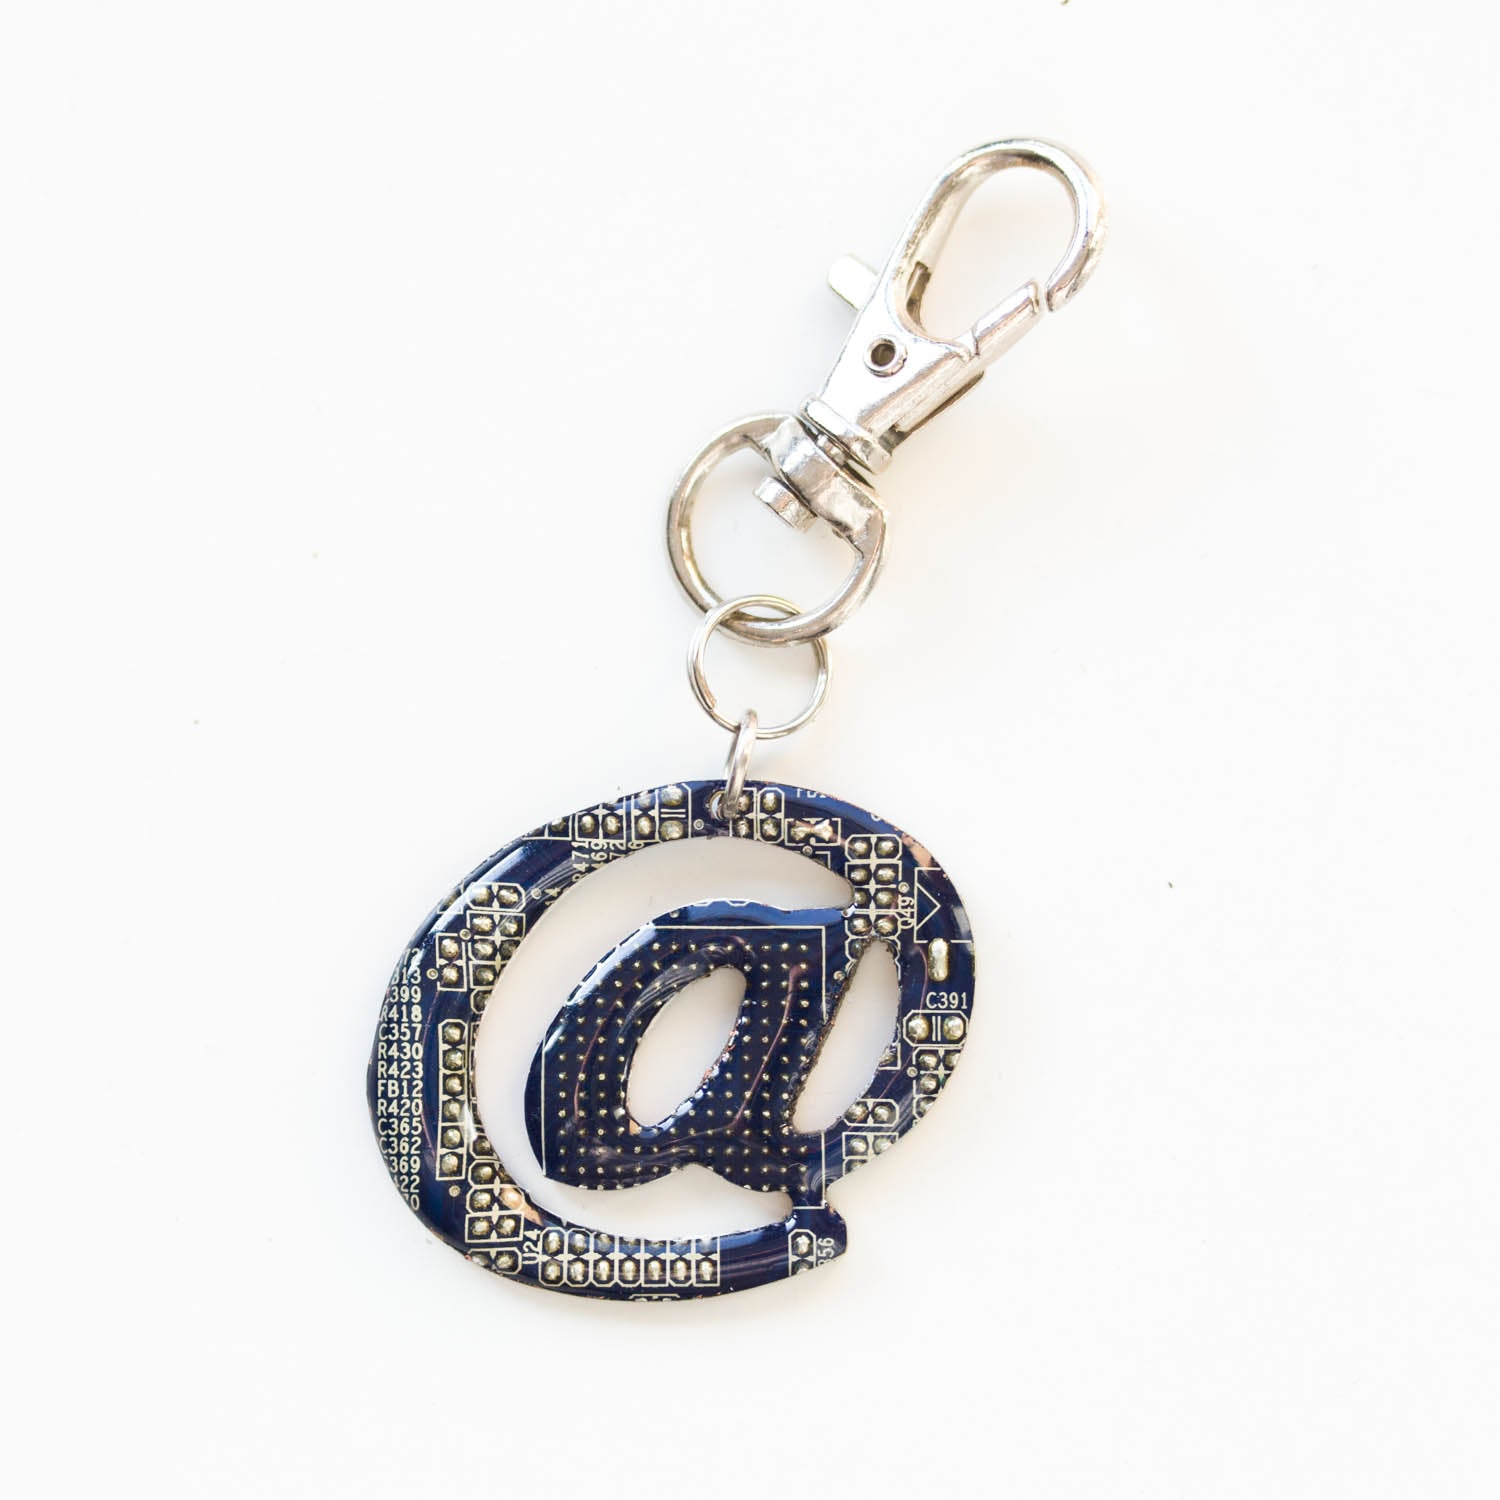 Geek At symbol keychain